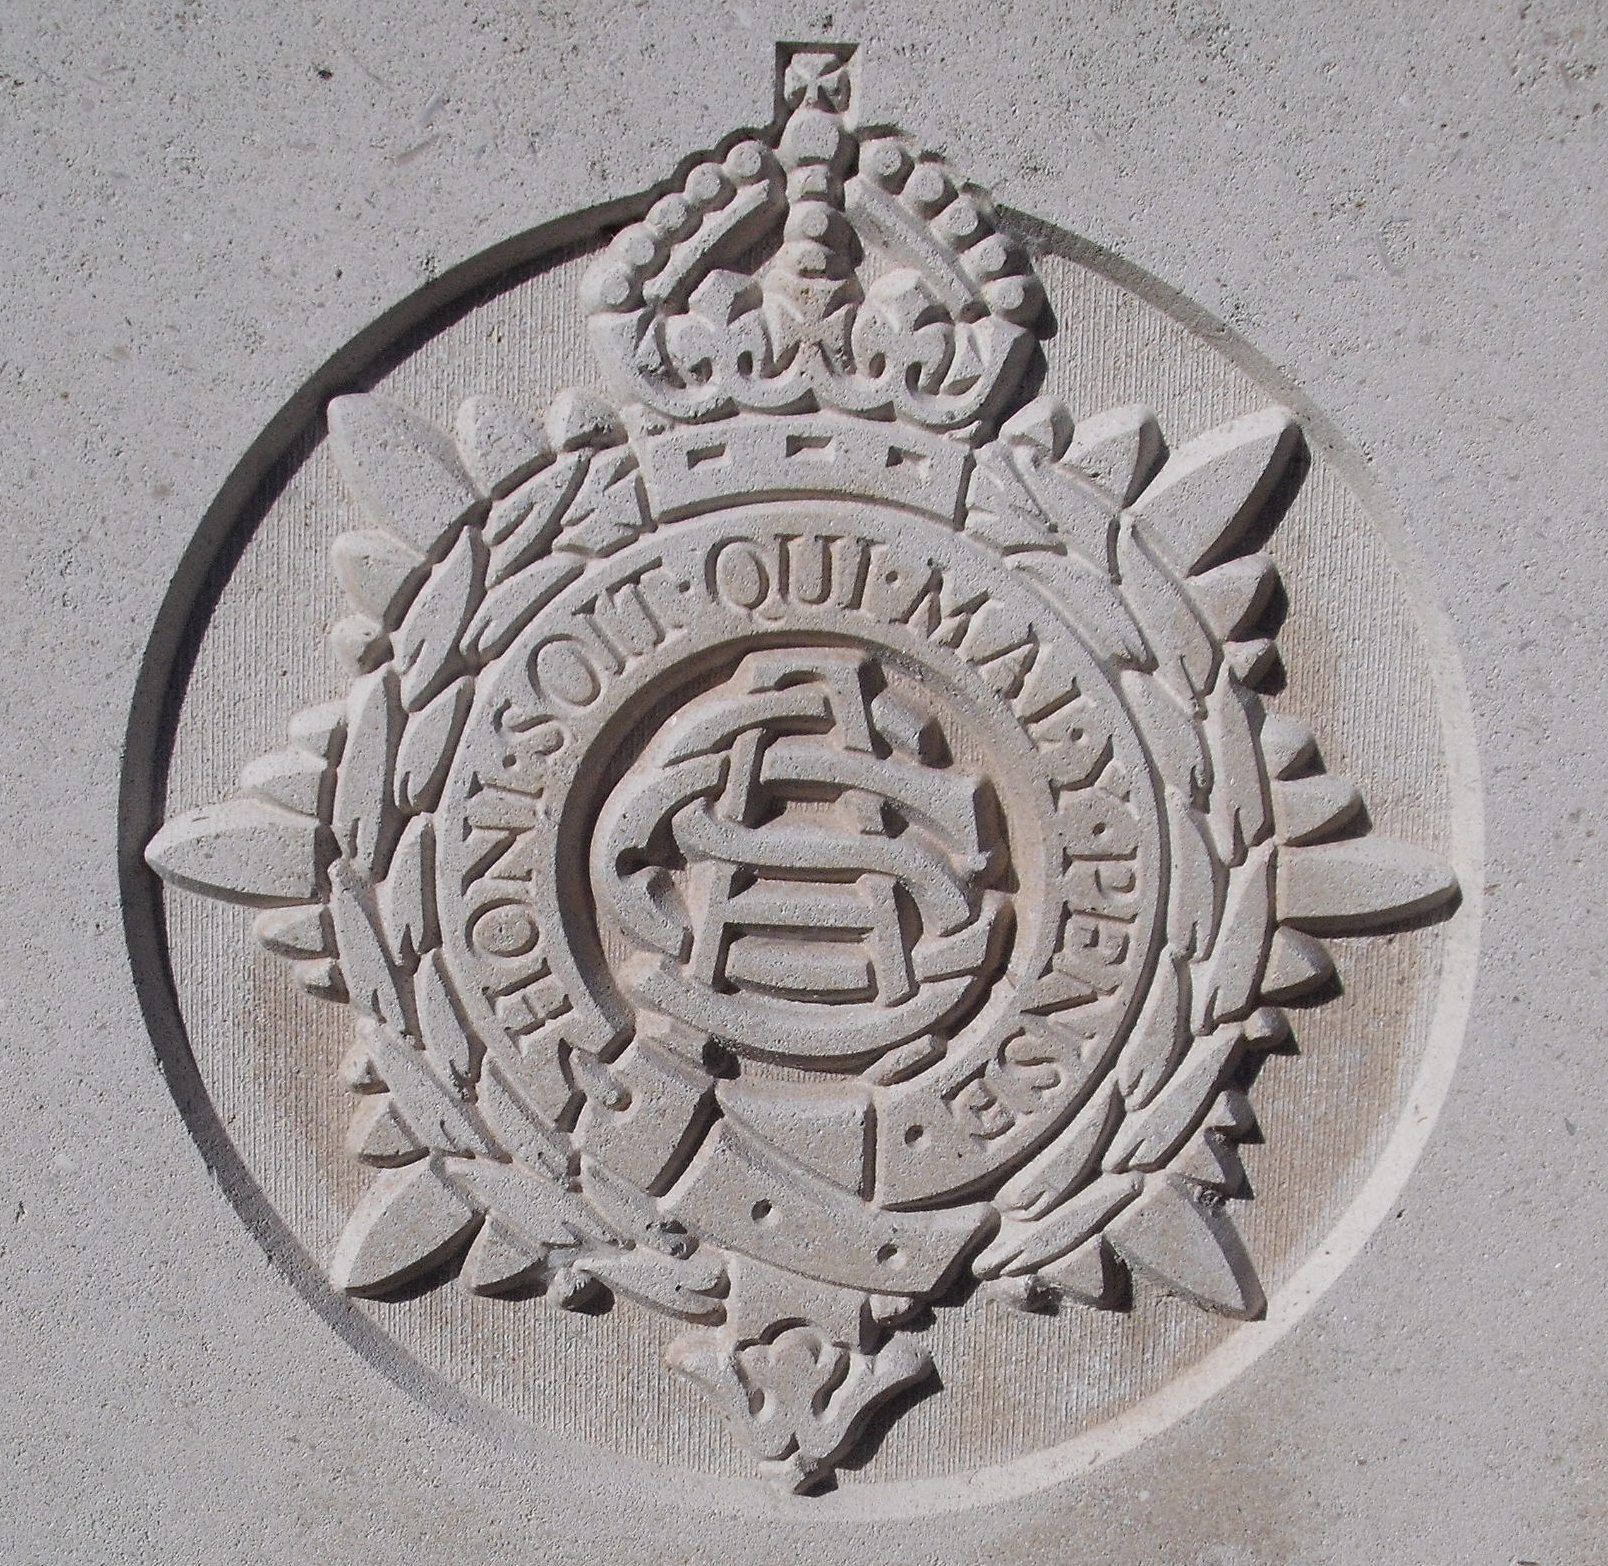 Capbadge of the Army Service Corps